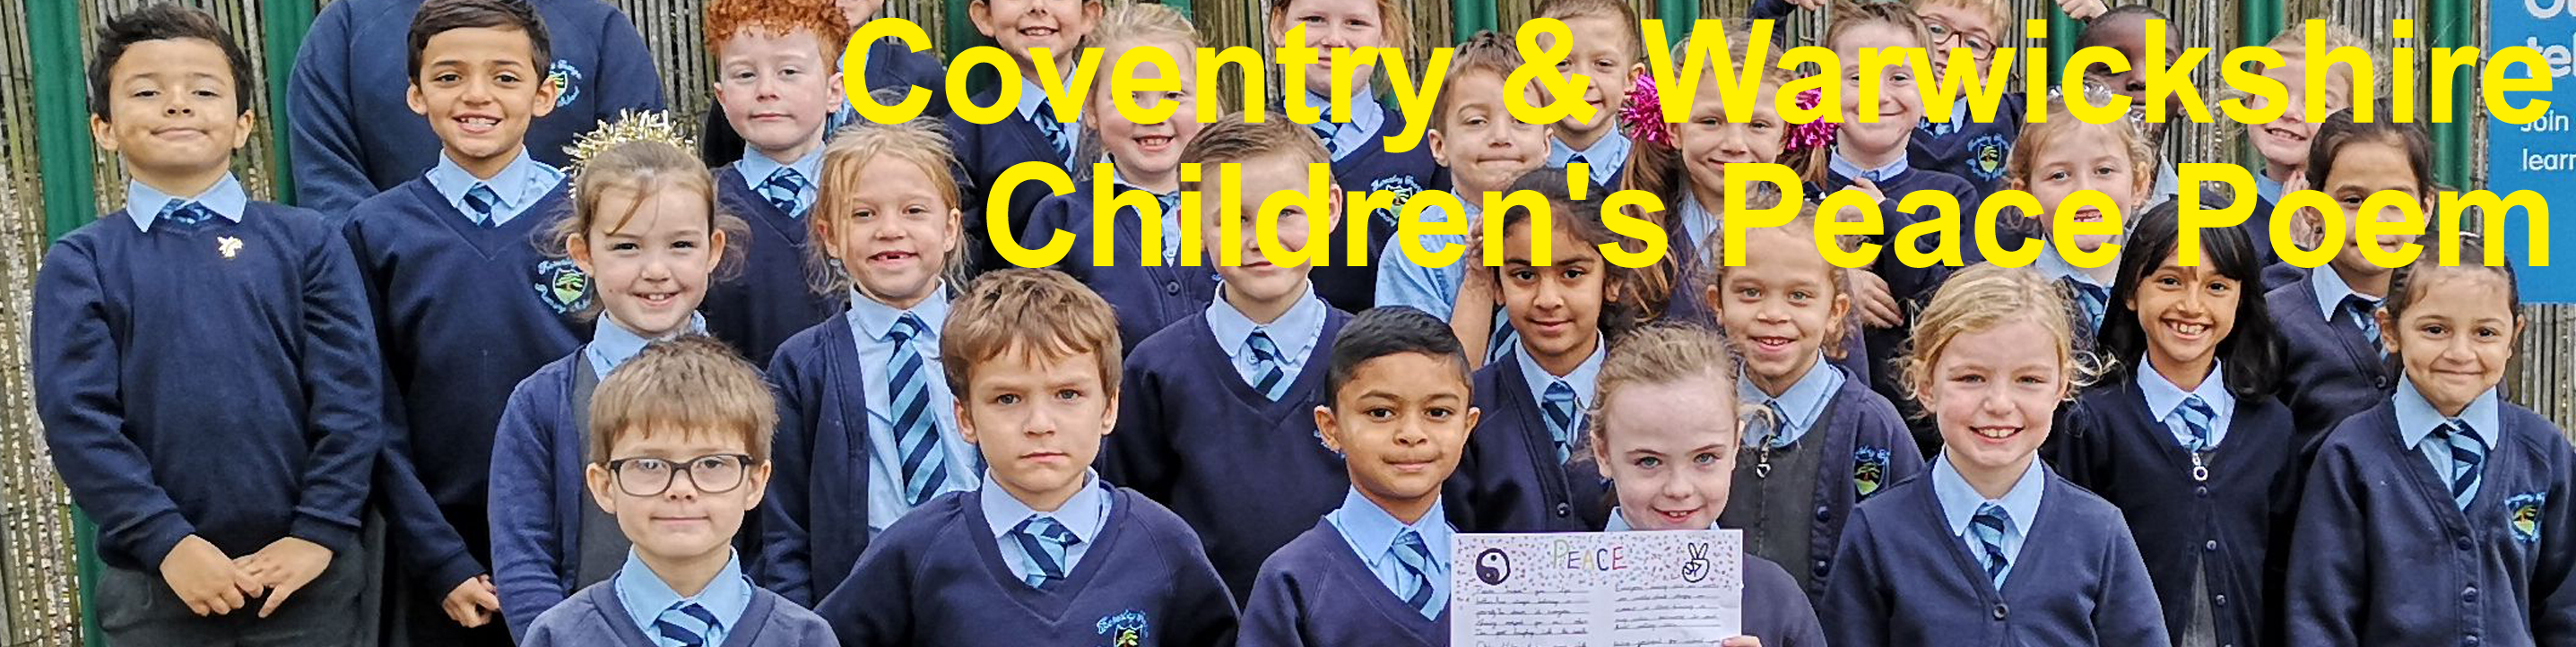 Coventry & Warwickshire Children's Peace Poem